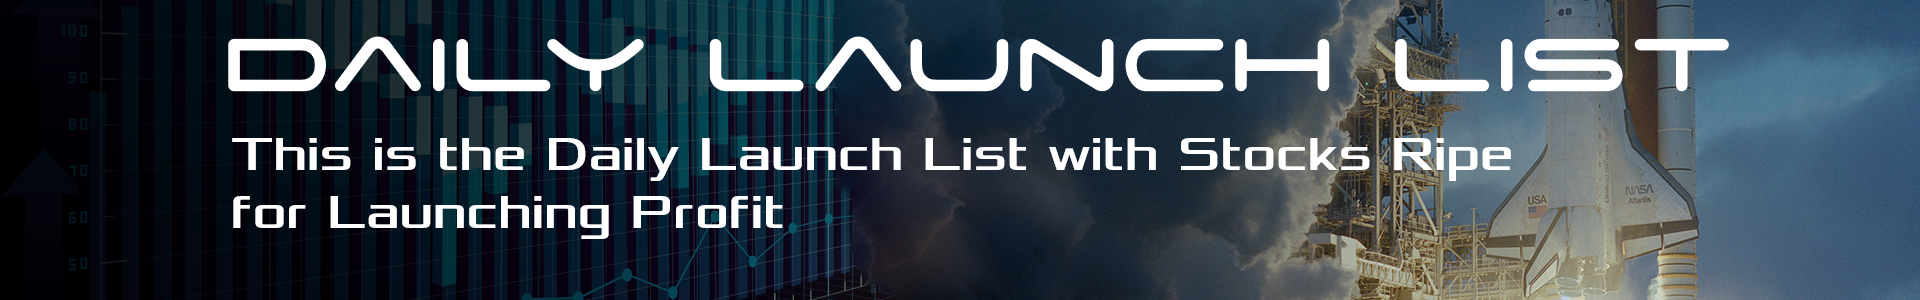 Launch-List-Splash